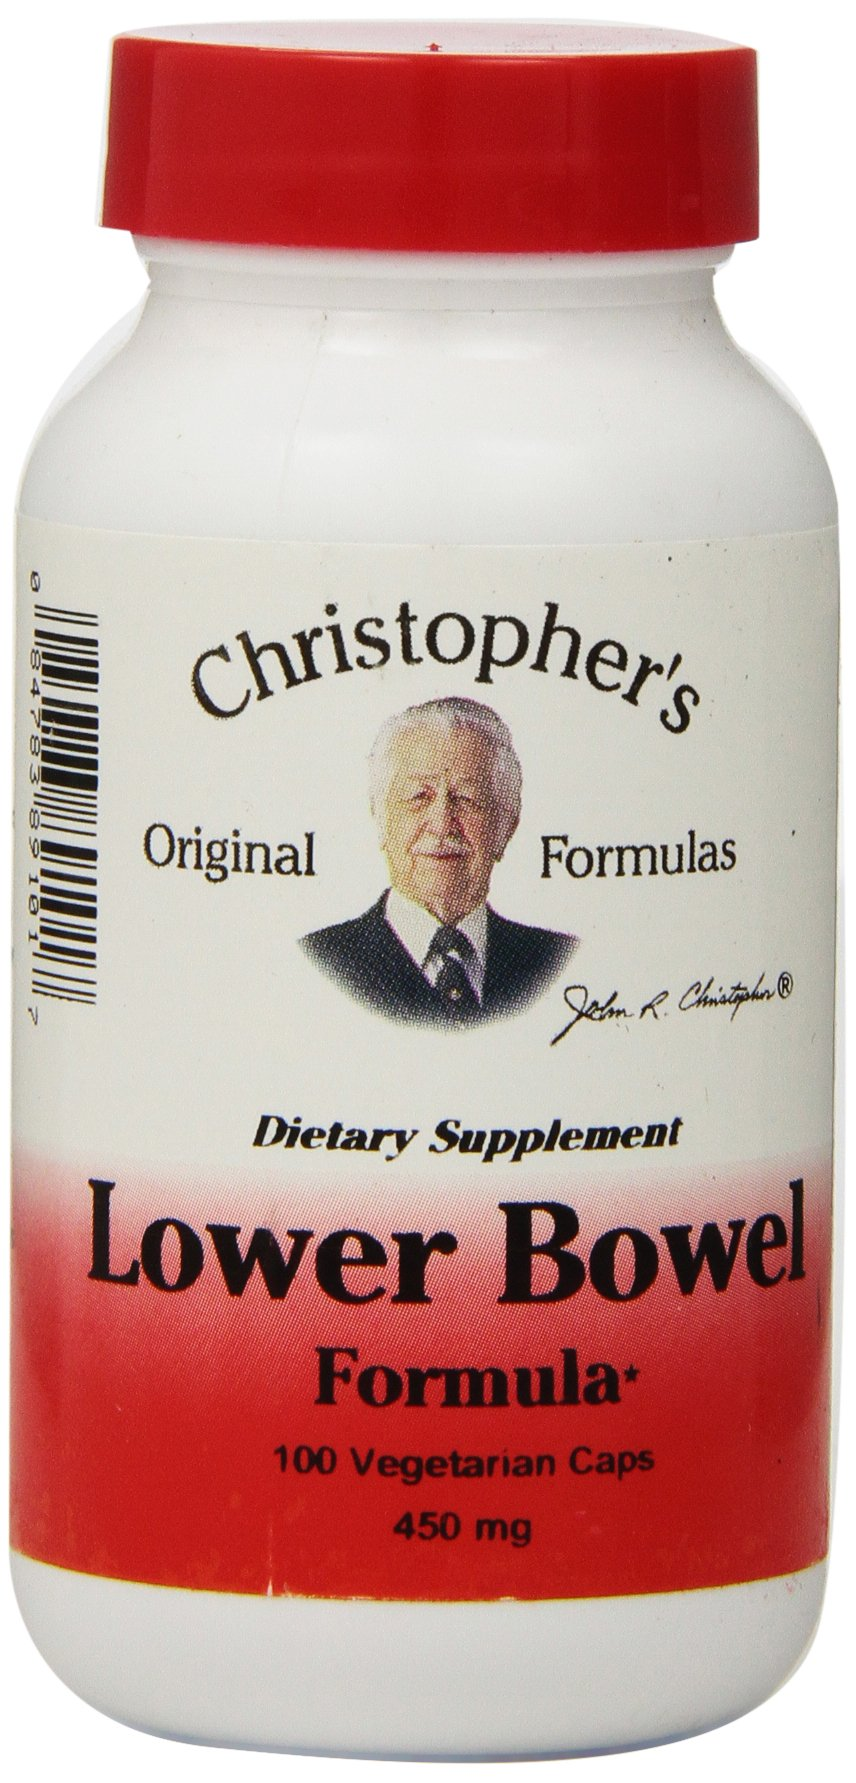 Dr. Christopher's Original Formulas Lower Bowel Formula Capsules, 100 Count